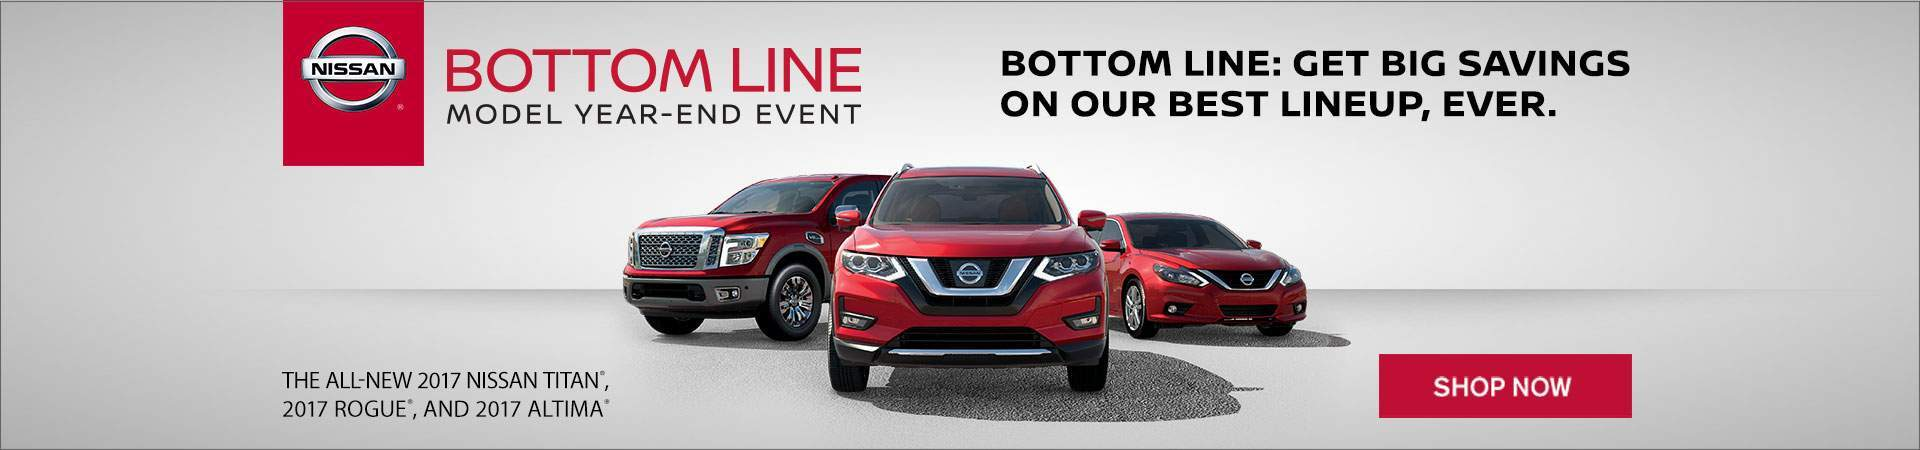 Nissan Dealership Houston Tx Used Cars Robbins Nissan